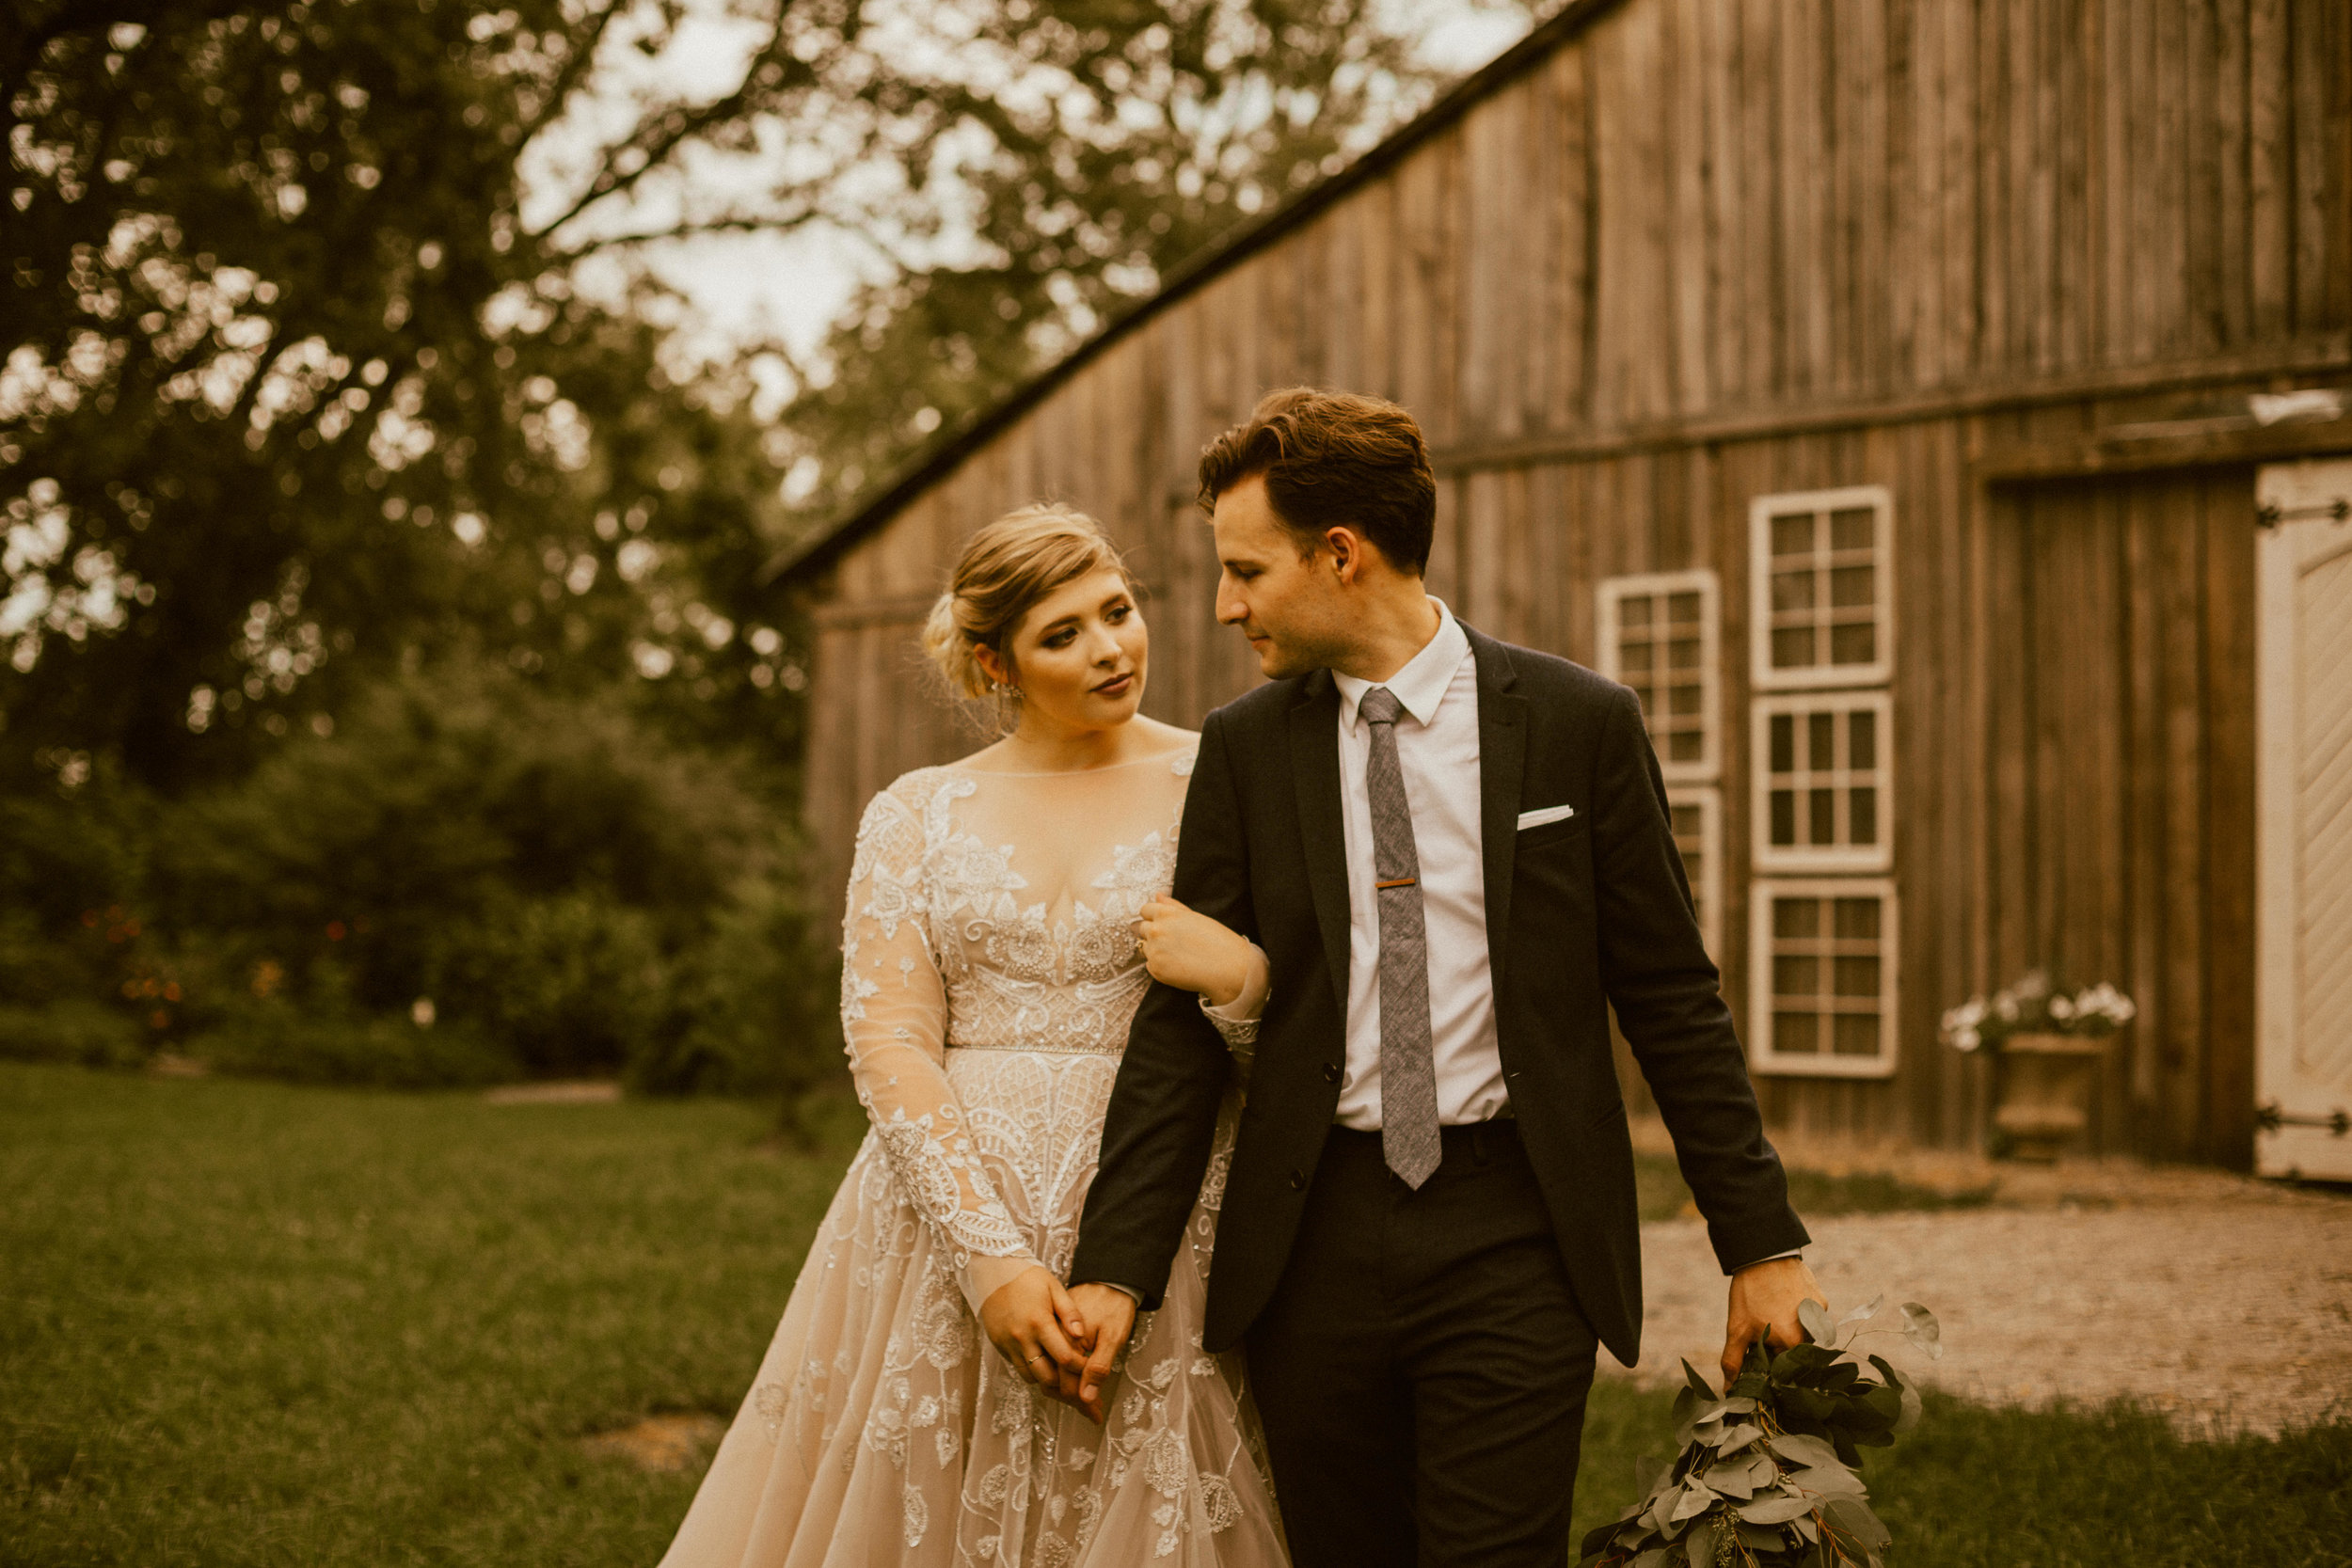 Nashville Wedding Photography by Saul Cervantes Photography-25.jpg